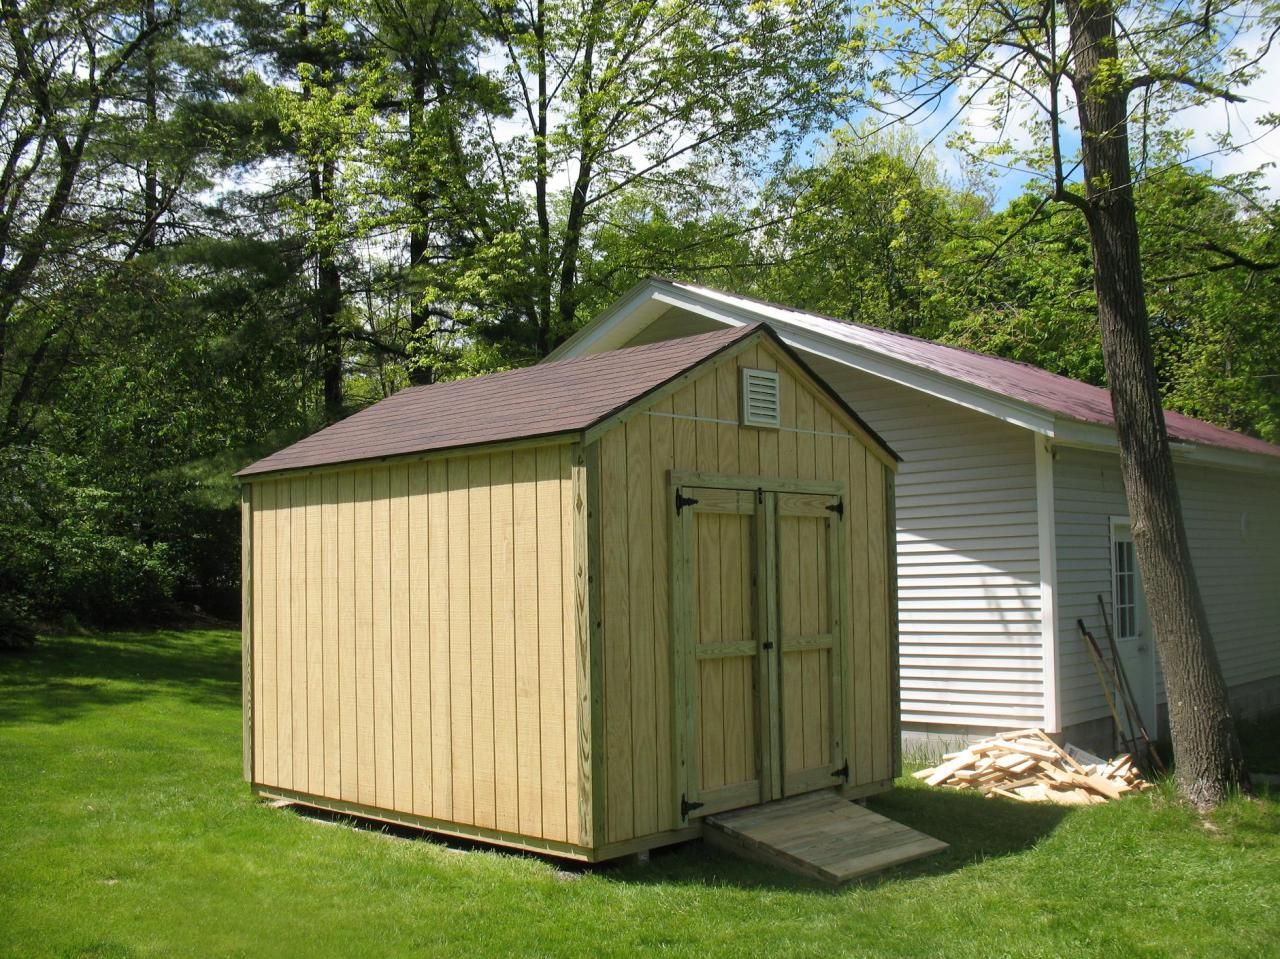 Design Schuur Choosing The Best Garden Shed Plans Clever Wood Projects